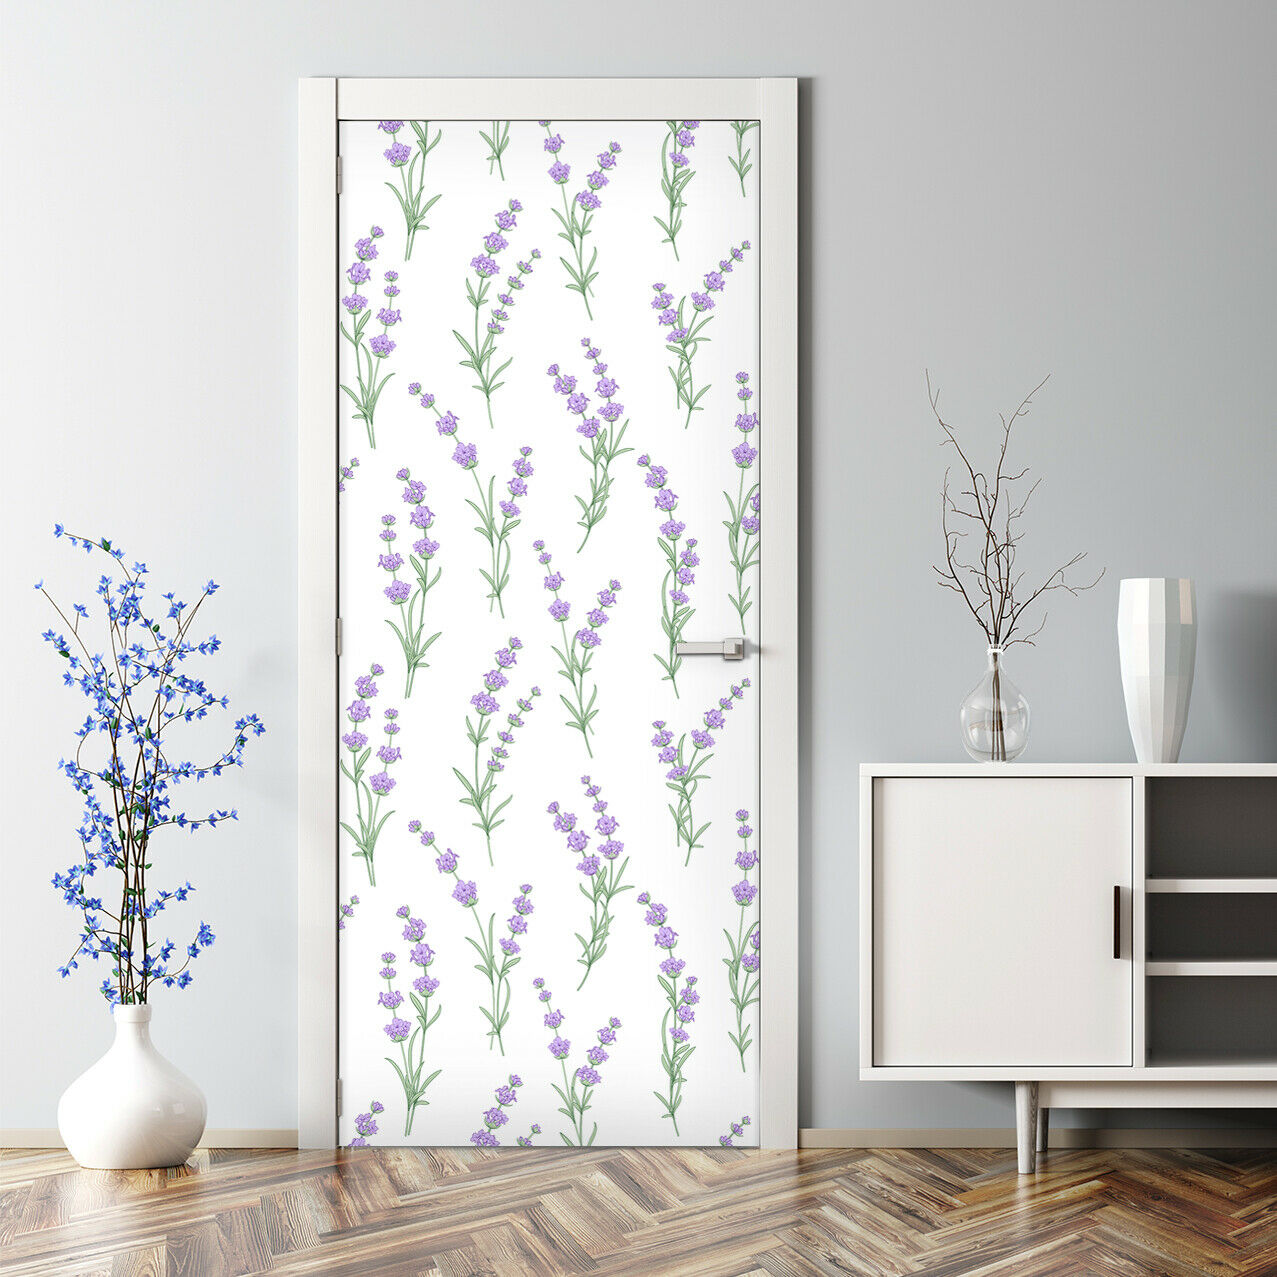 Lavender flowers self-adhesive lila and Grün Door Decal Wand StKunstseiteing 265